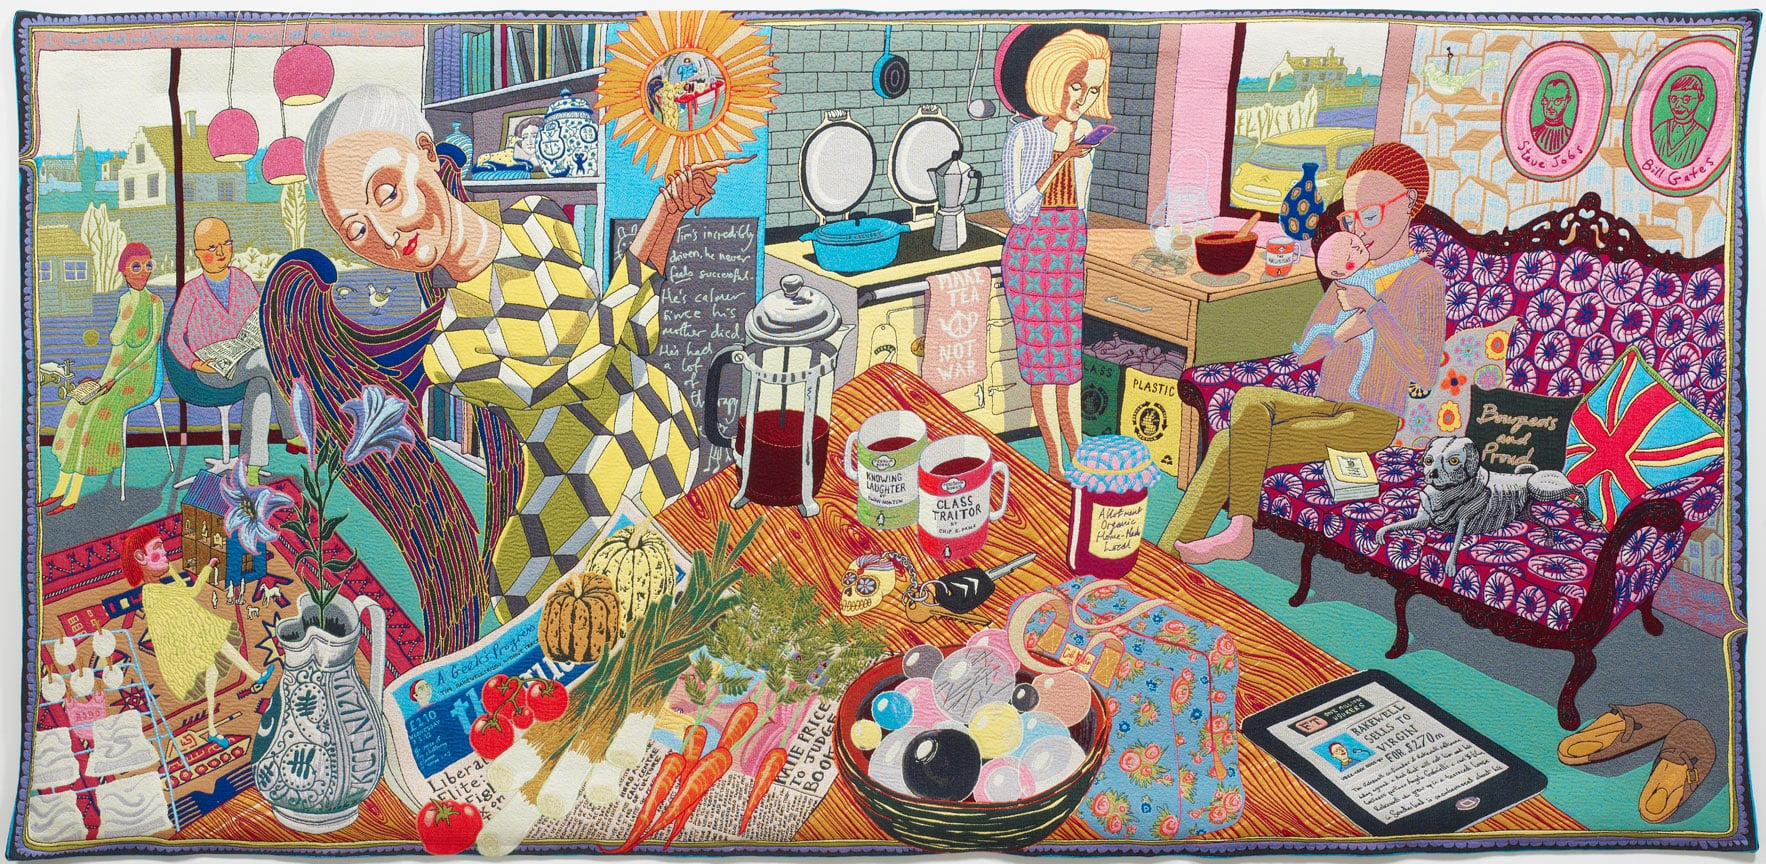 4. Grayson Perry, The Annunciation of the Virgin Deal, 2012, Arts Council Collection, Southbank Centre London and British Council - Arts Council Collection, Southbank Centre, London and British Council. Gift of the artist and Victoria Miro gallery with the support of Channel 4 Television, The Art Fund and Sfumato Foundation with additional support from AlixPartners. © Grayson Per